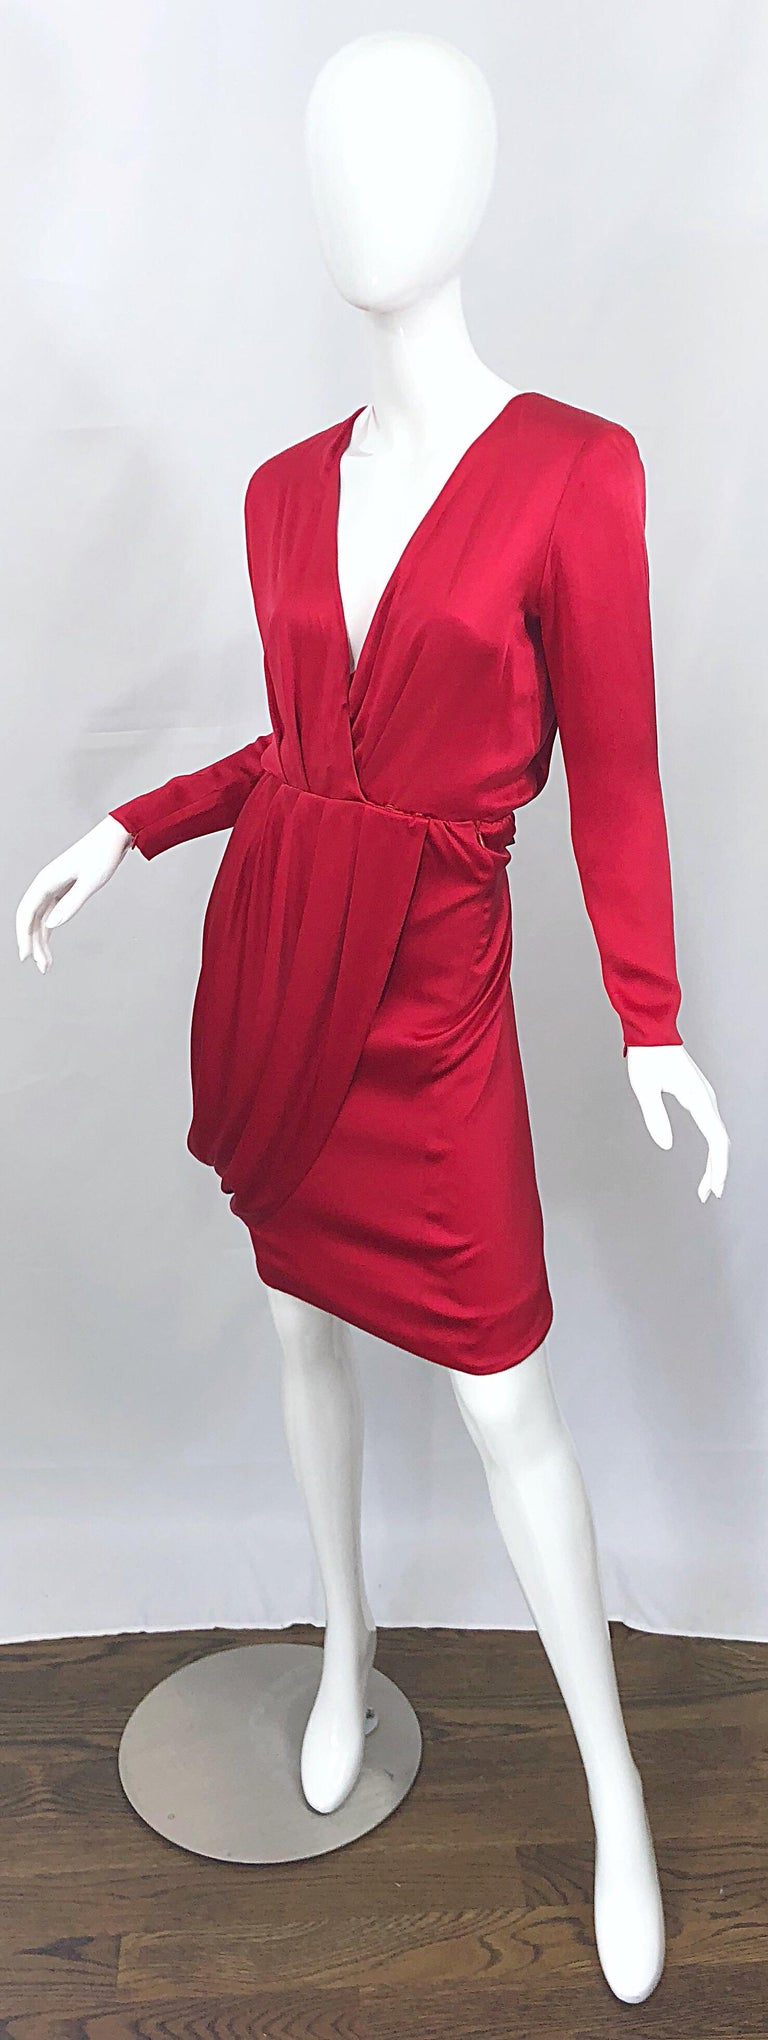 Vintage Givenchy Couture by Alexander McQueen Sz 36 Lipstick Red Silk Cape Dress For Sale 4